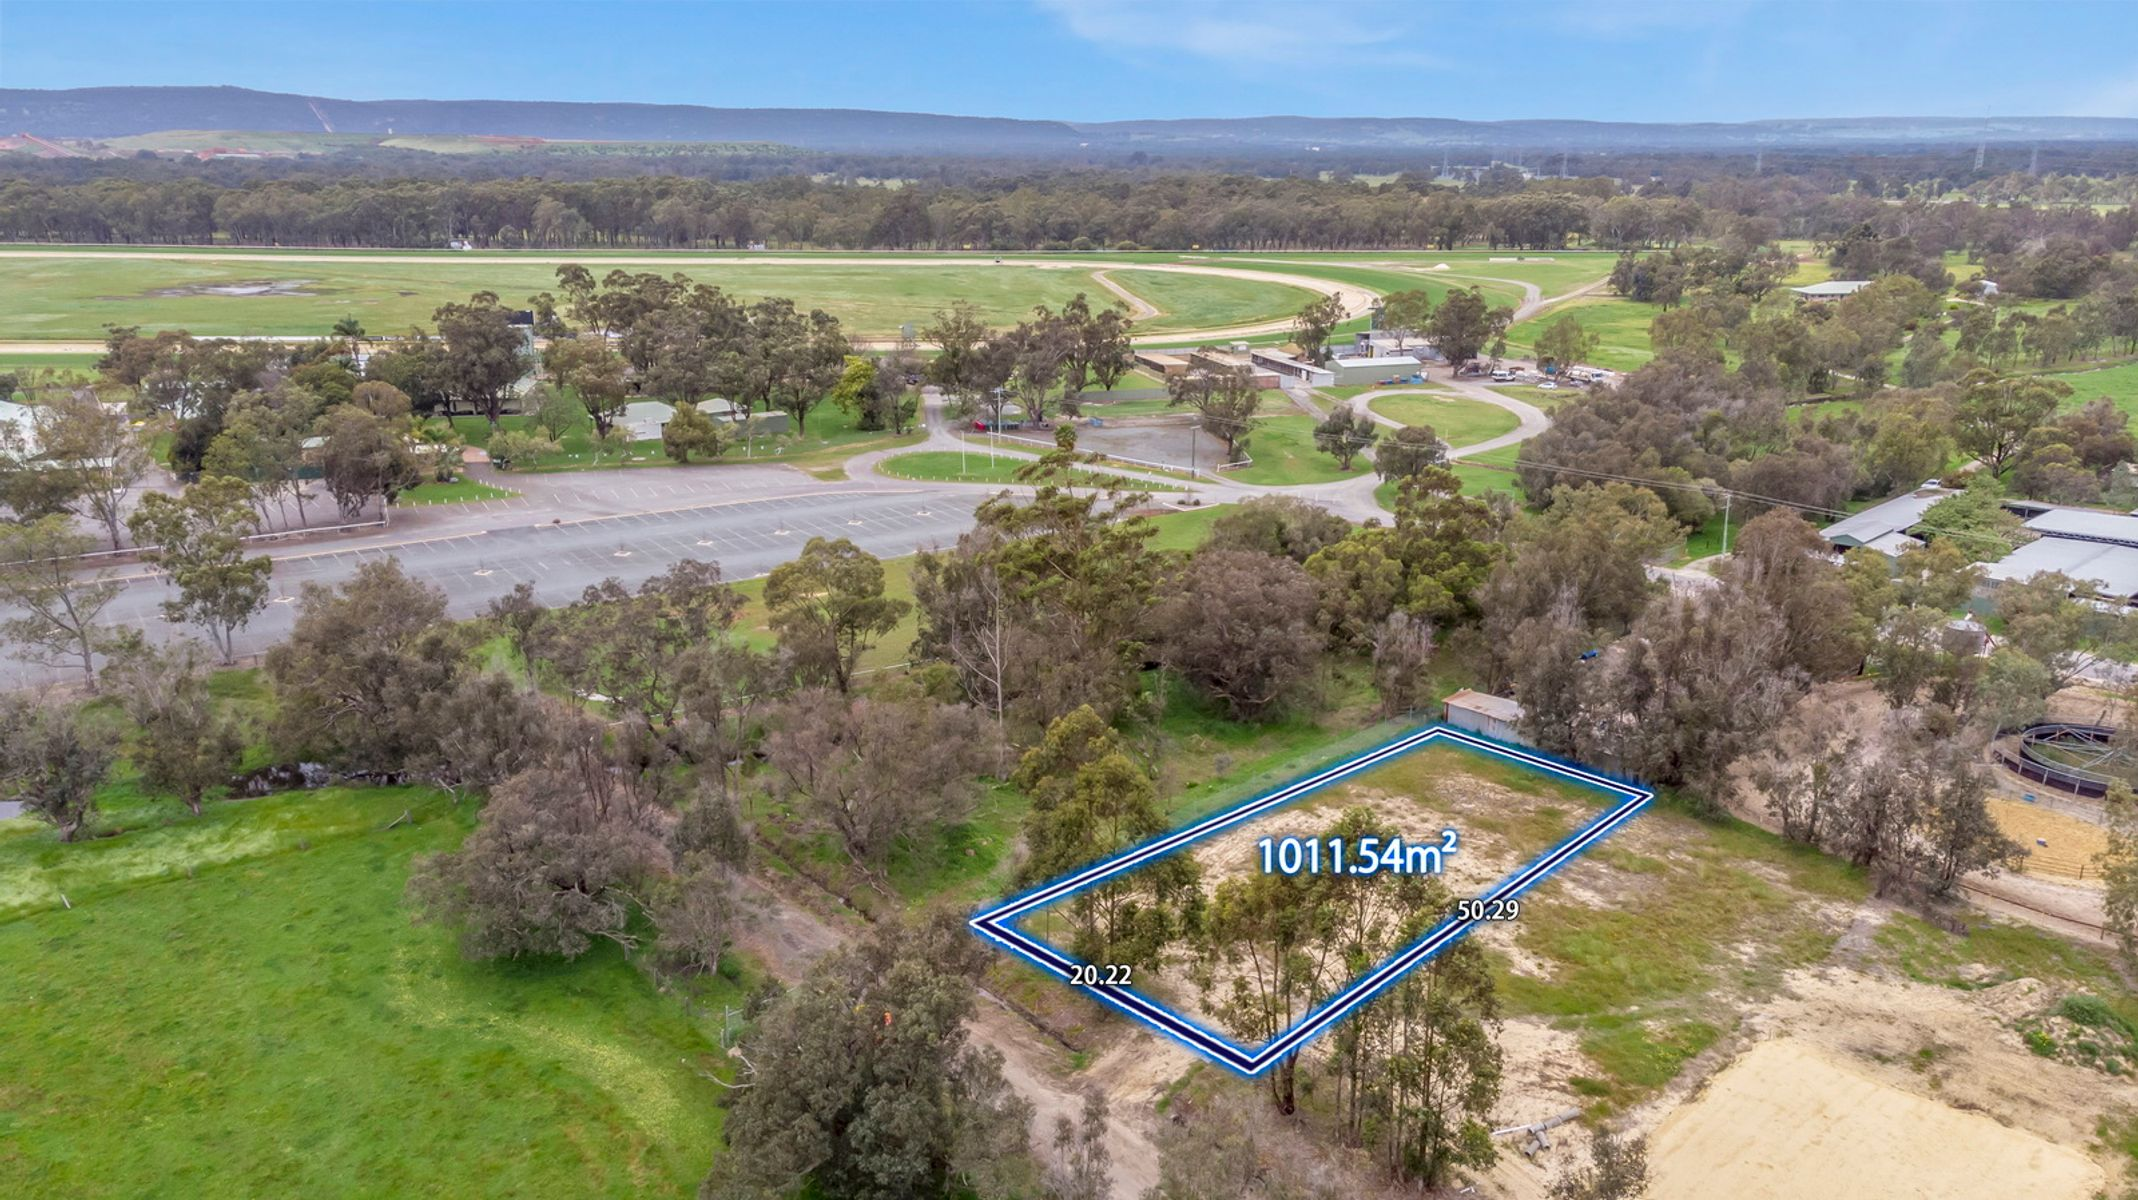 20 George Beacham Way, Pinjarra, WA 6208